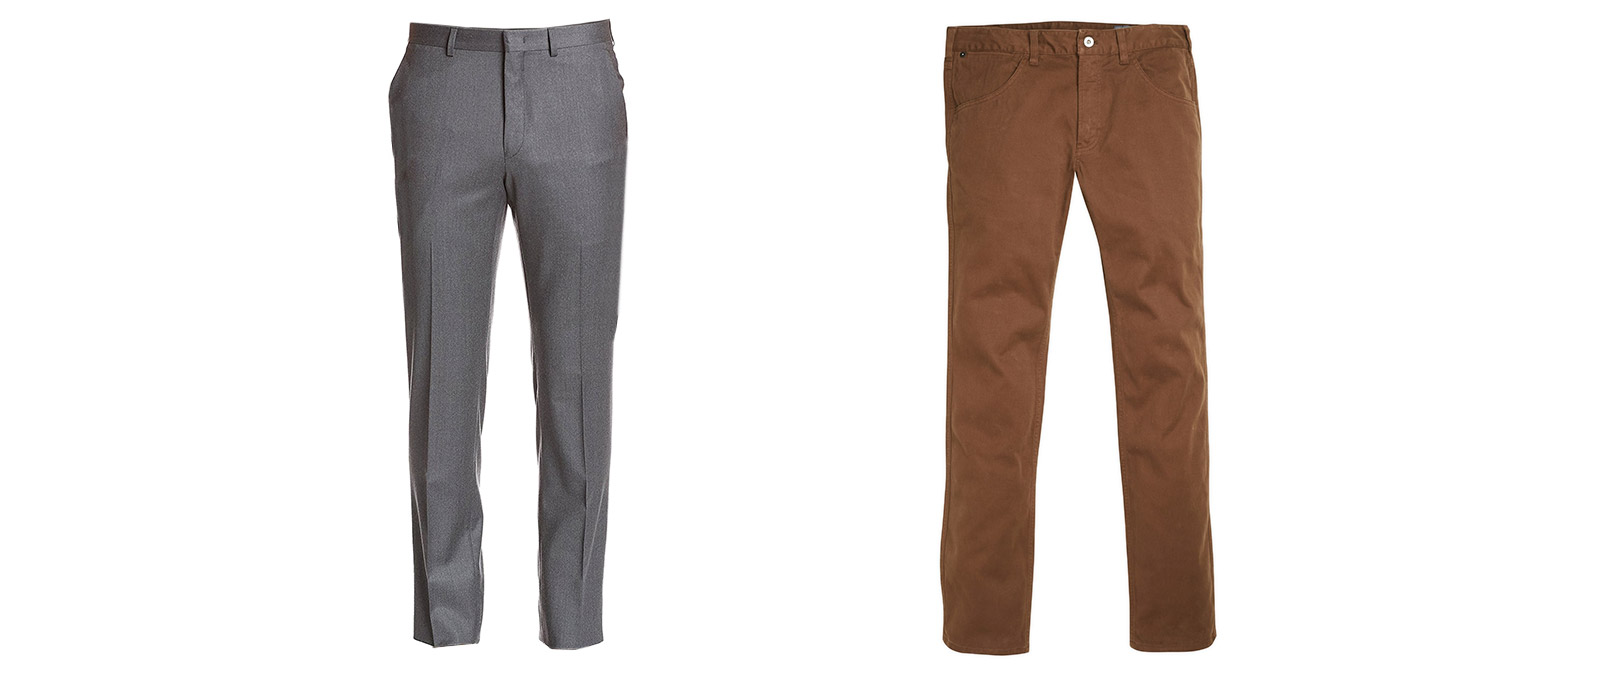 fall winter pants options